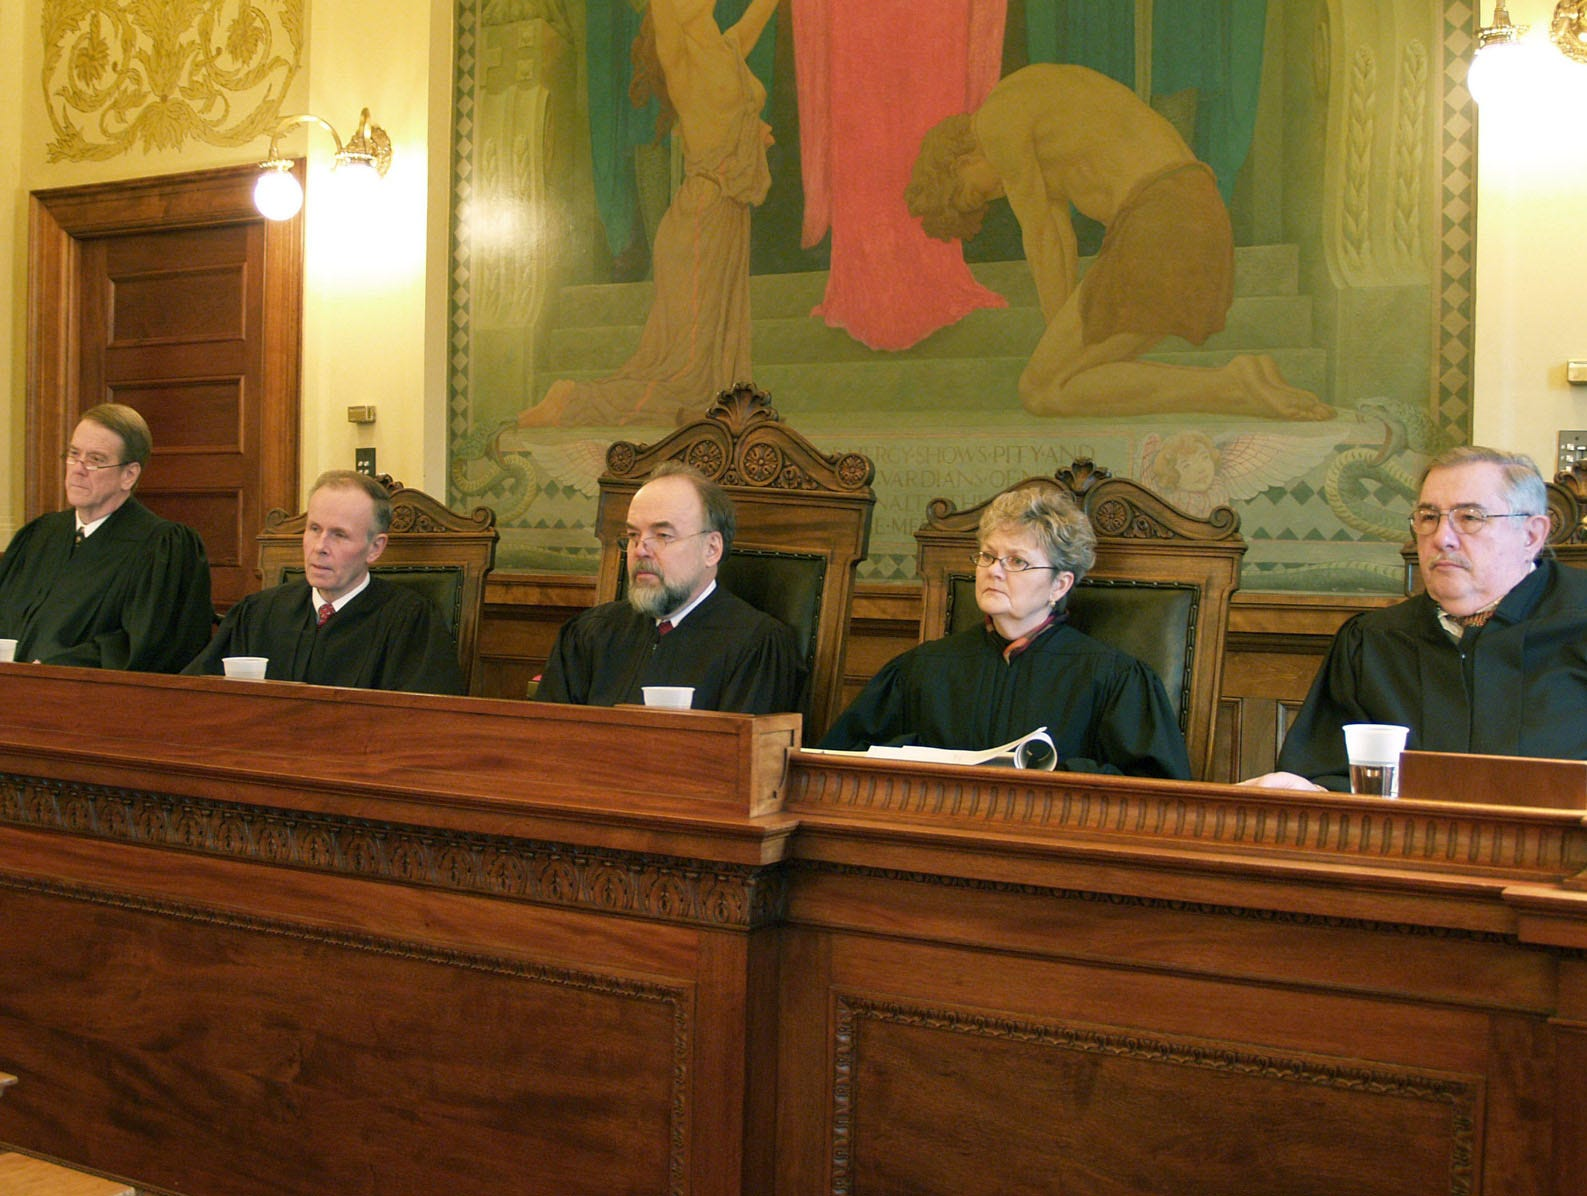 The state Supreme Court, seen Jan. 10, 2006, at Pierre, S.D., during a hearing over a man who was fired for drinking on the job, issued a ruling Thursday, March 9, 2006, that said he was improperly fired. From left are Justice Steven L. Zinter, Justice John K. Konenkamp, Chief Justice David Gilbertson, Justice Judith Meierhenry, and acting Justice Robert A. Miller. (AP Photo/Joe Kafka)